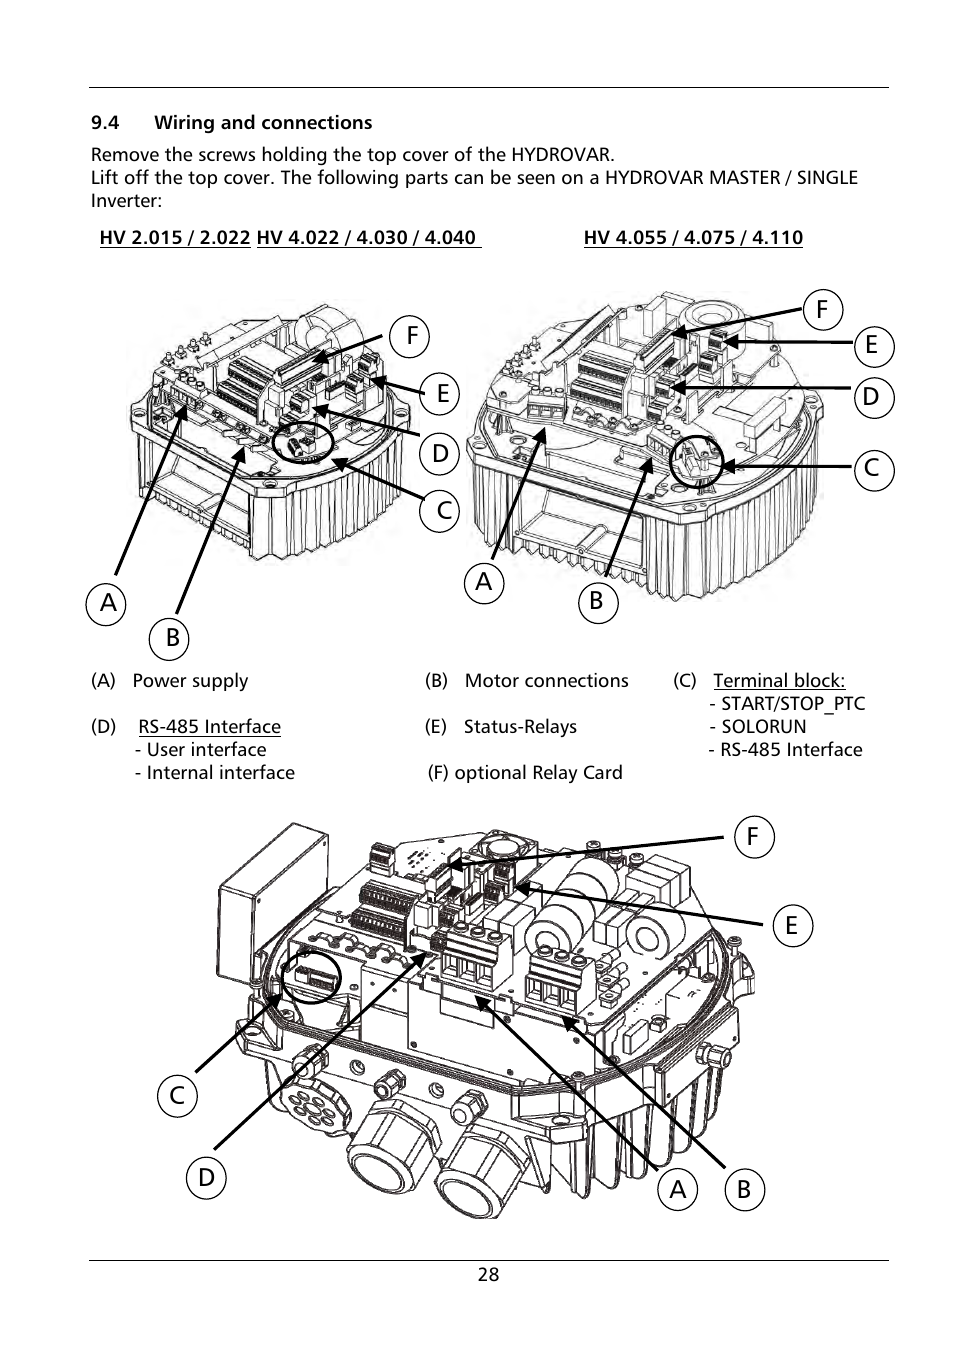 Xylem Hydrovar Hv 4150 4185 4220 User Manual Page 28 104 485 Case Wiring Diagram Also For 4055 4075 4110 4022 4030 4040